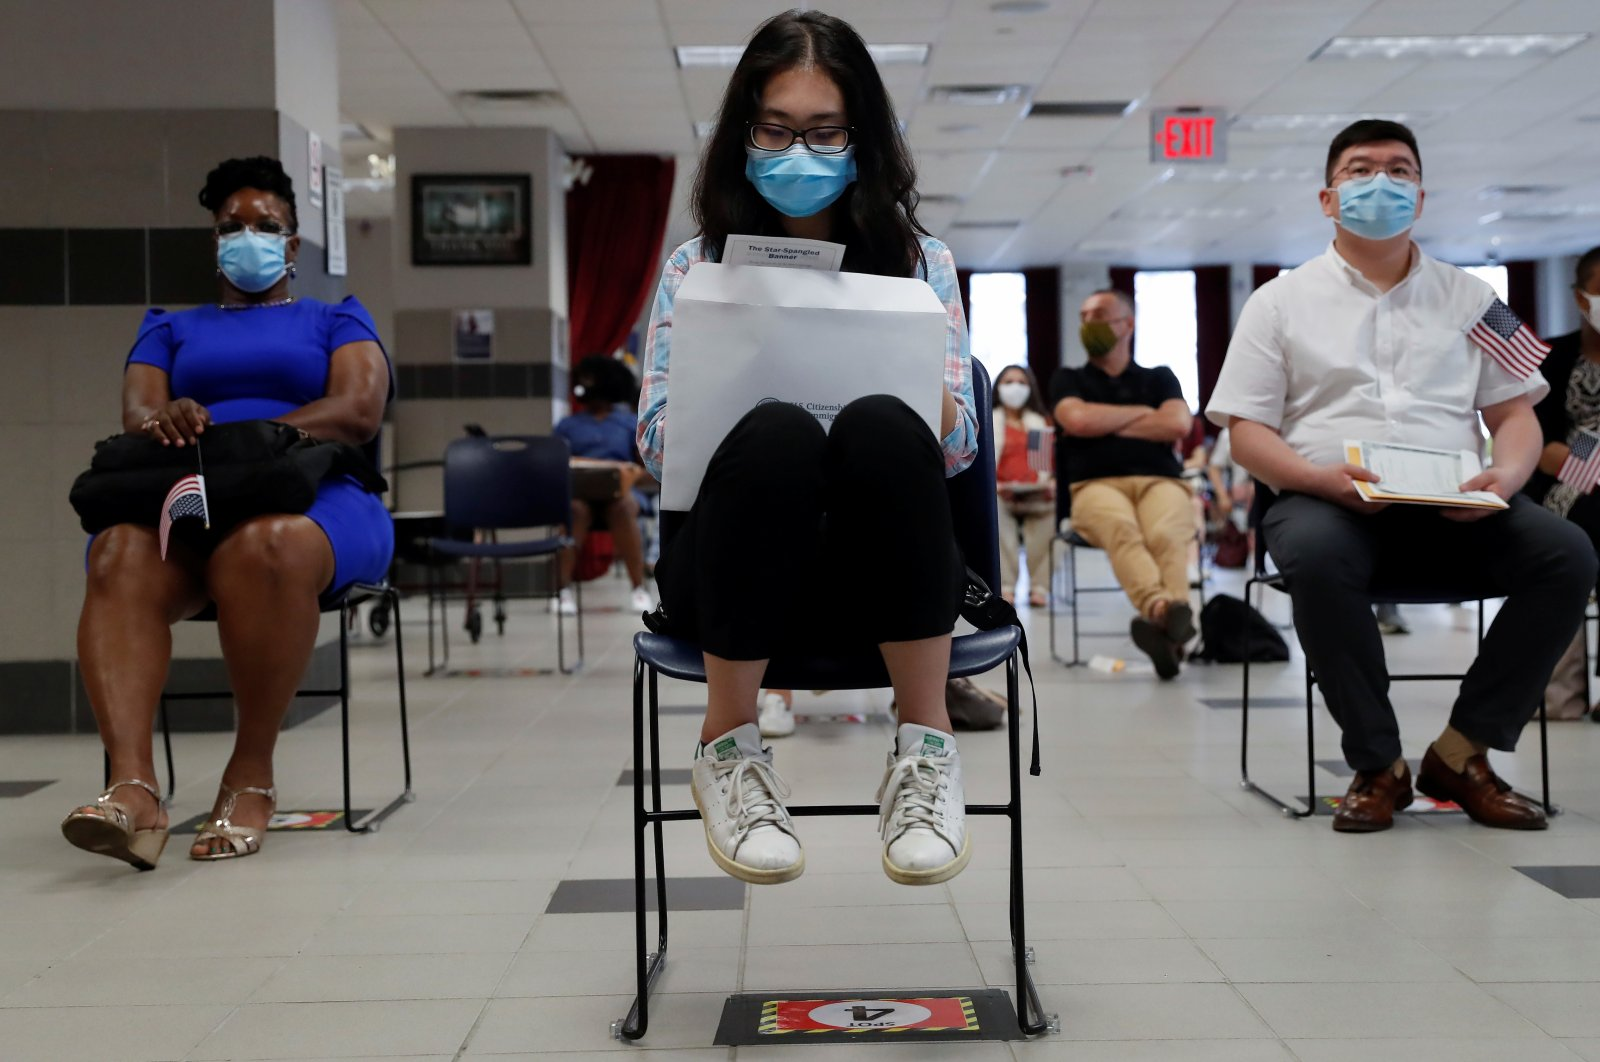 Citizen candidates sit socially distanced and wearing protective face masks, as the outbreak of the coronavirus continues, during a U.S. Citizenship and Immigration Services (USCIS) naturalization ceremony in New York City, New York, U.S., July 22, 2020. (Reuters Photo)